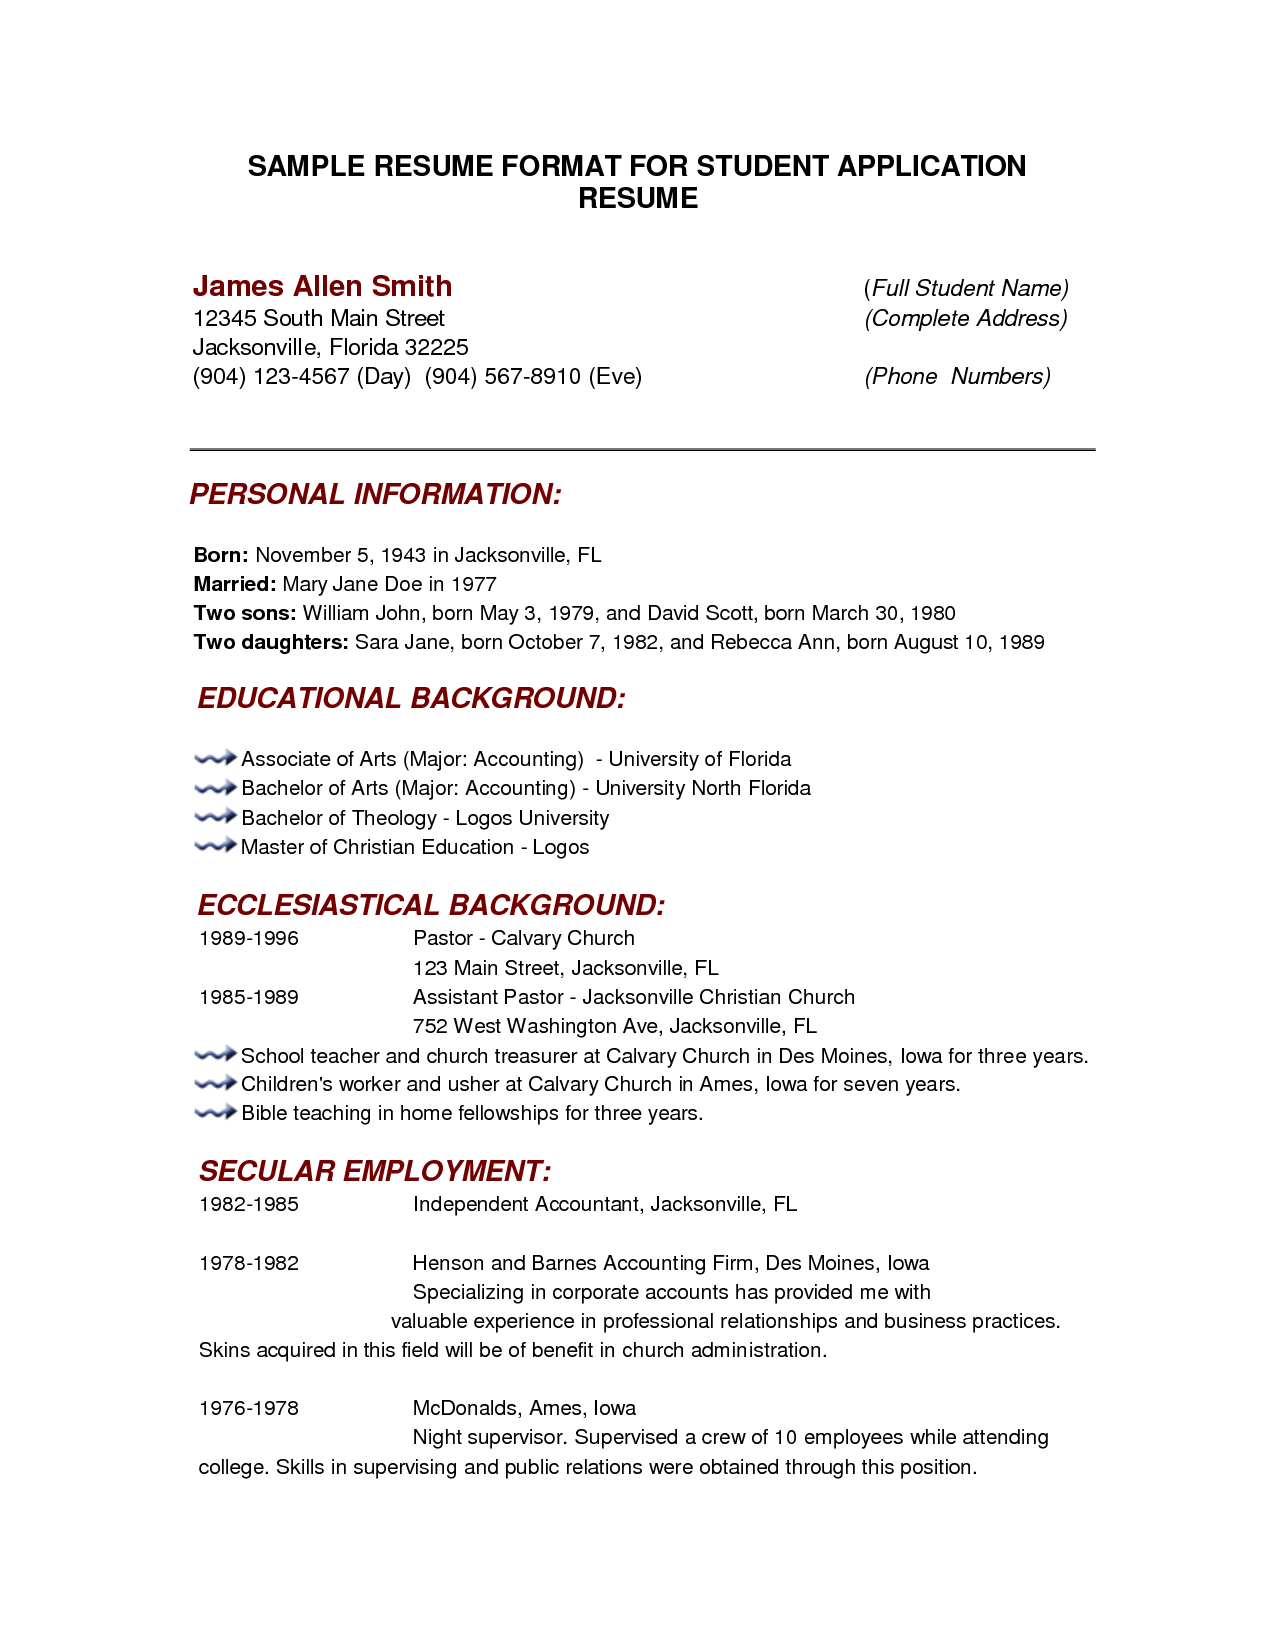 Academic Resume Template Resume Template For College Students  Httpwwwresumecareer